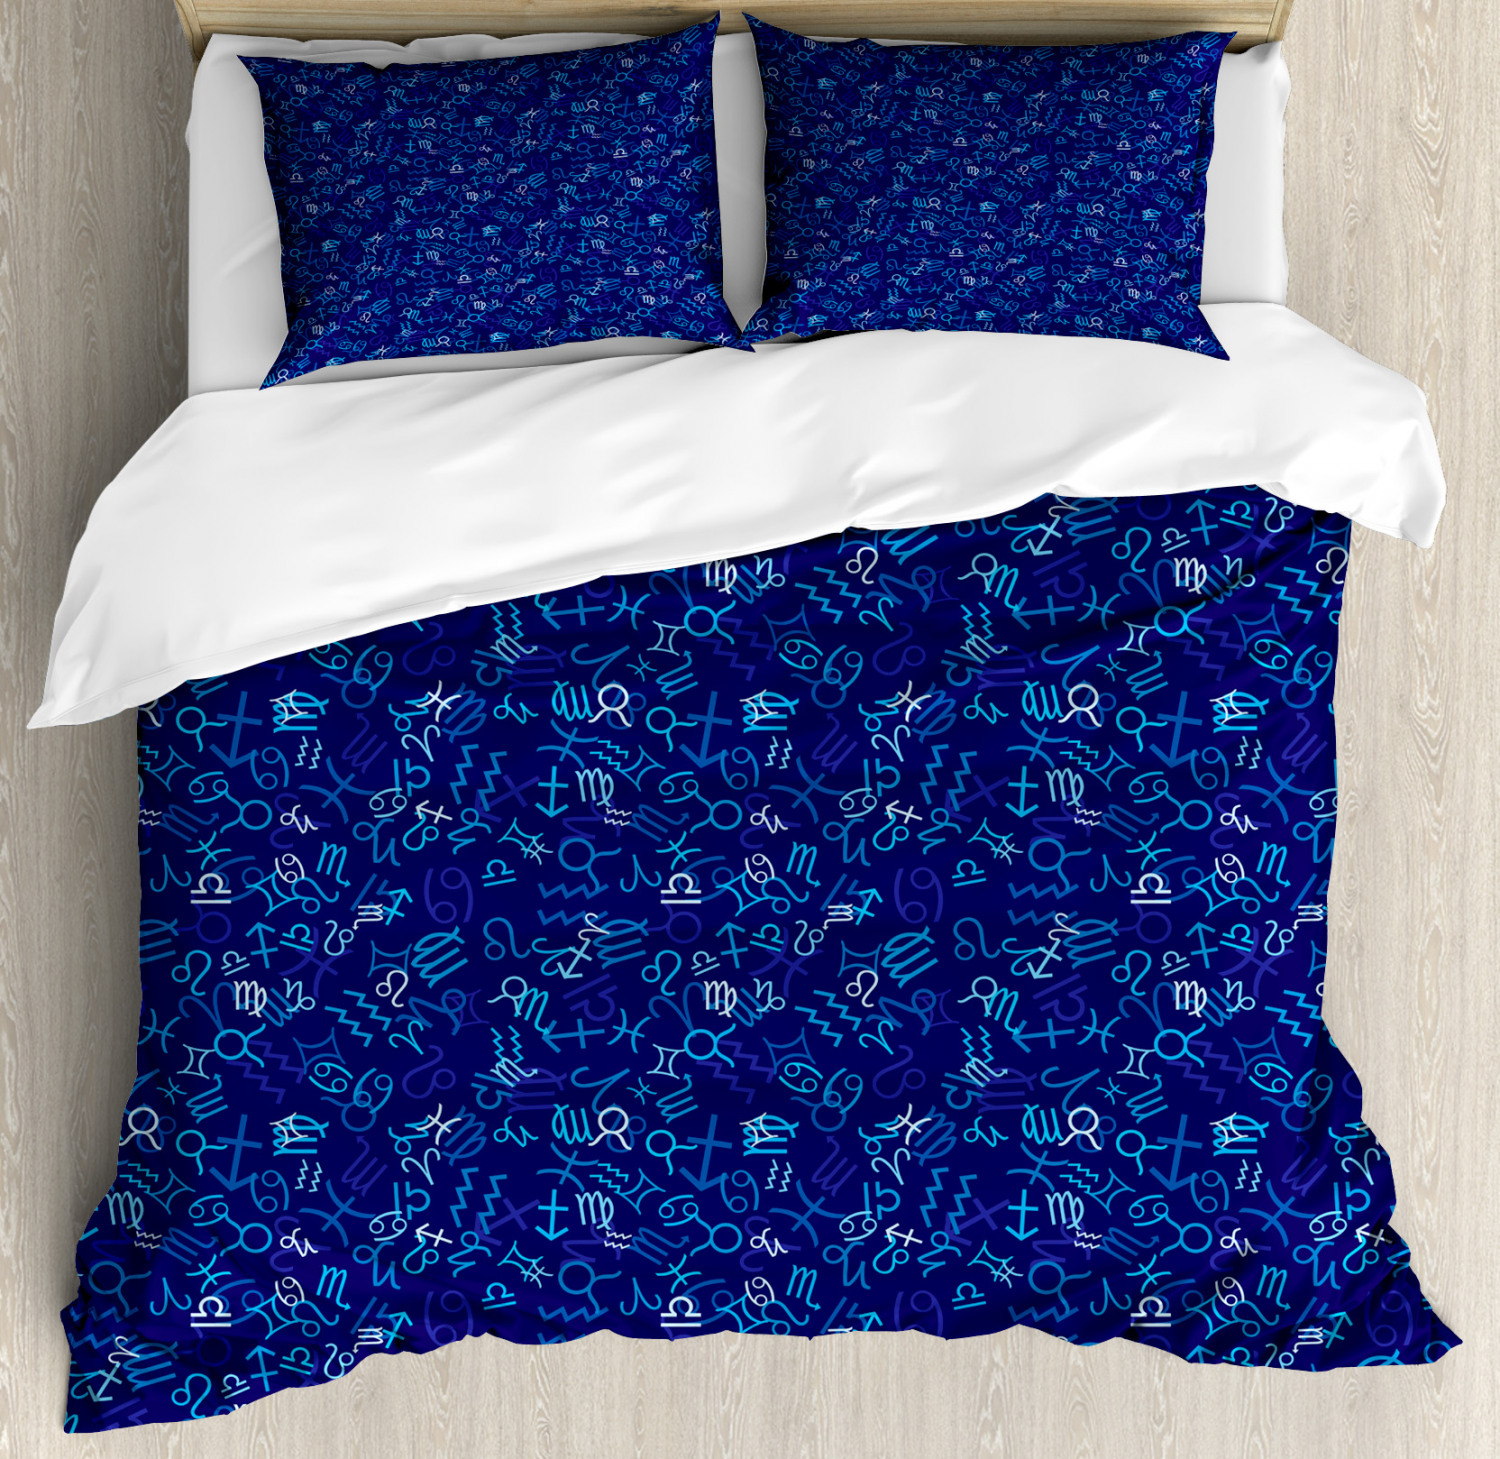 Astrology Duvet Cover Set with Pillow Shams Zodiac Icons in bluee Print